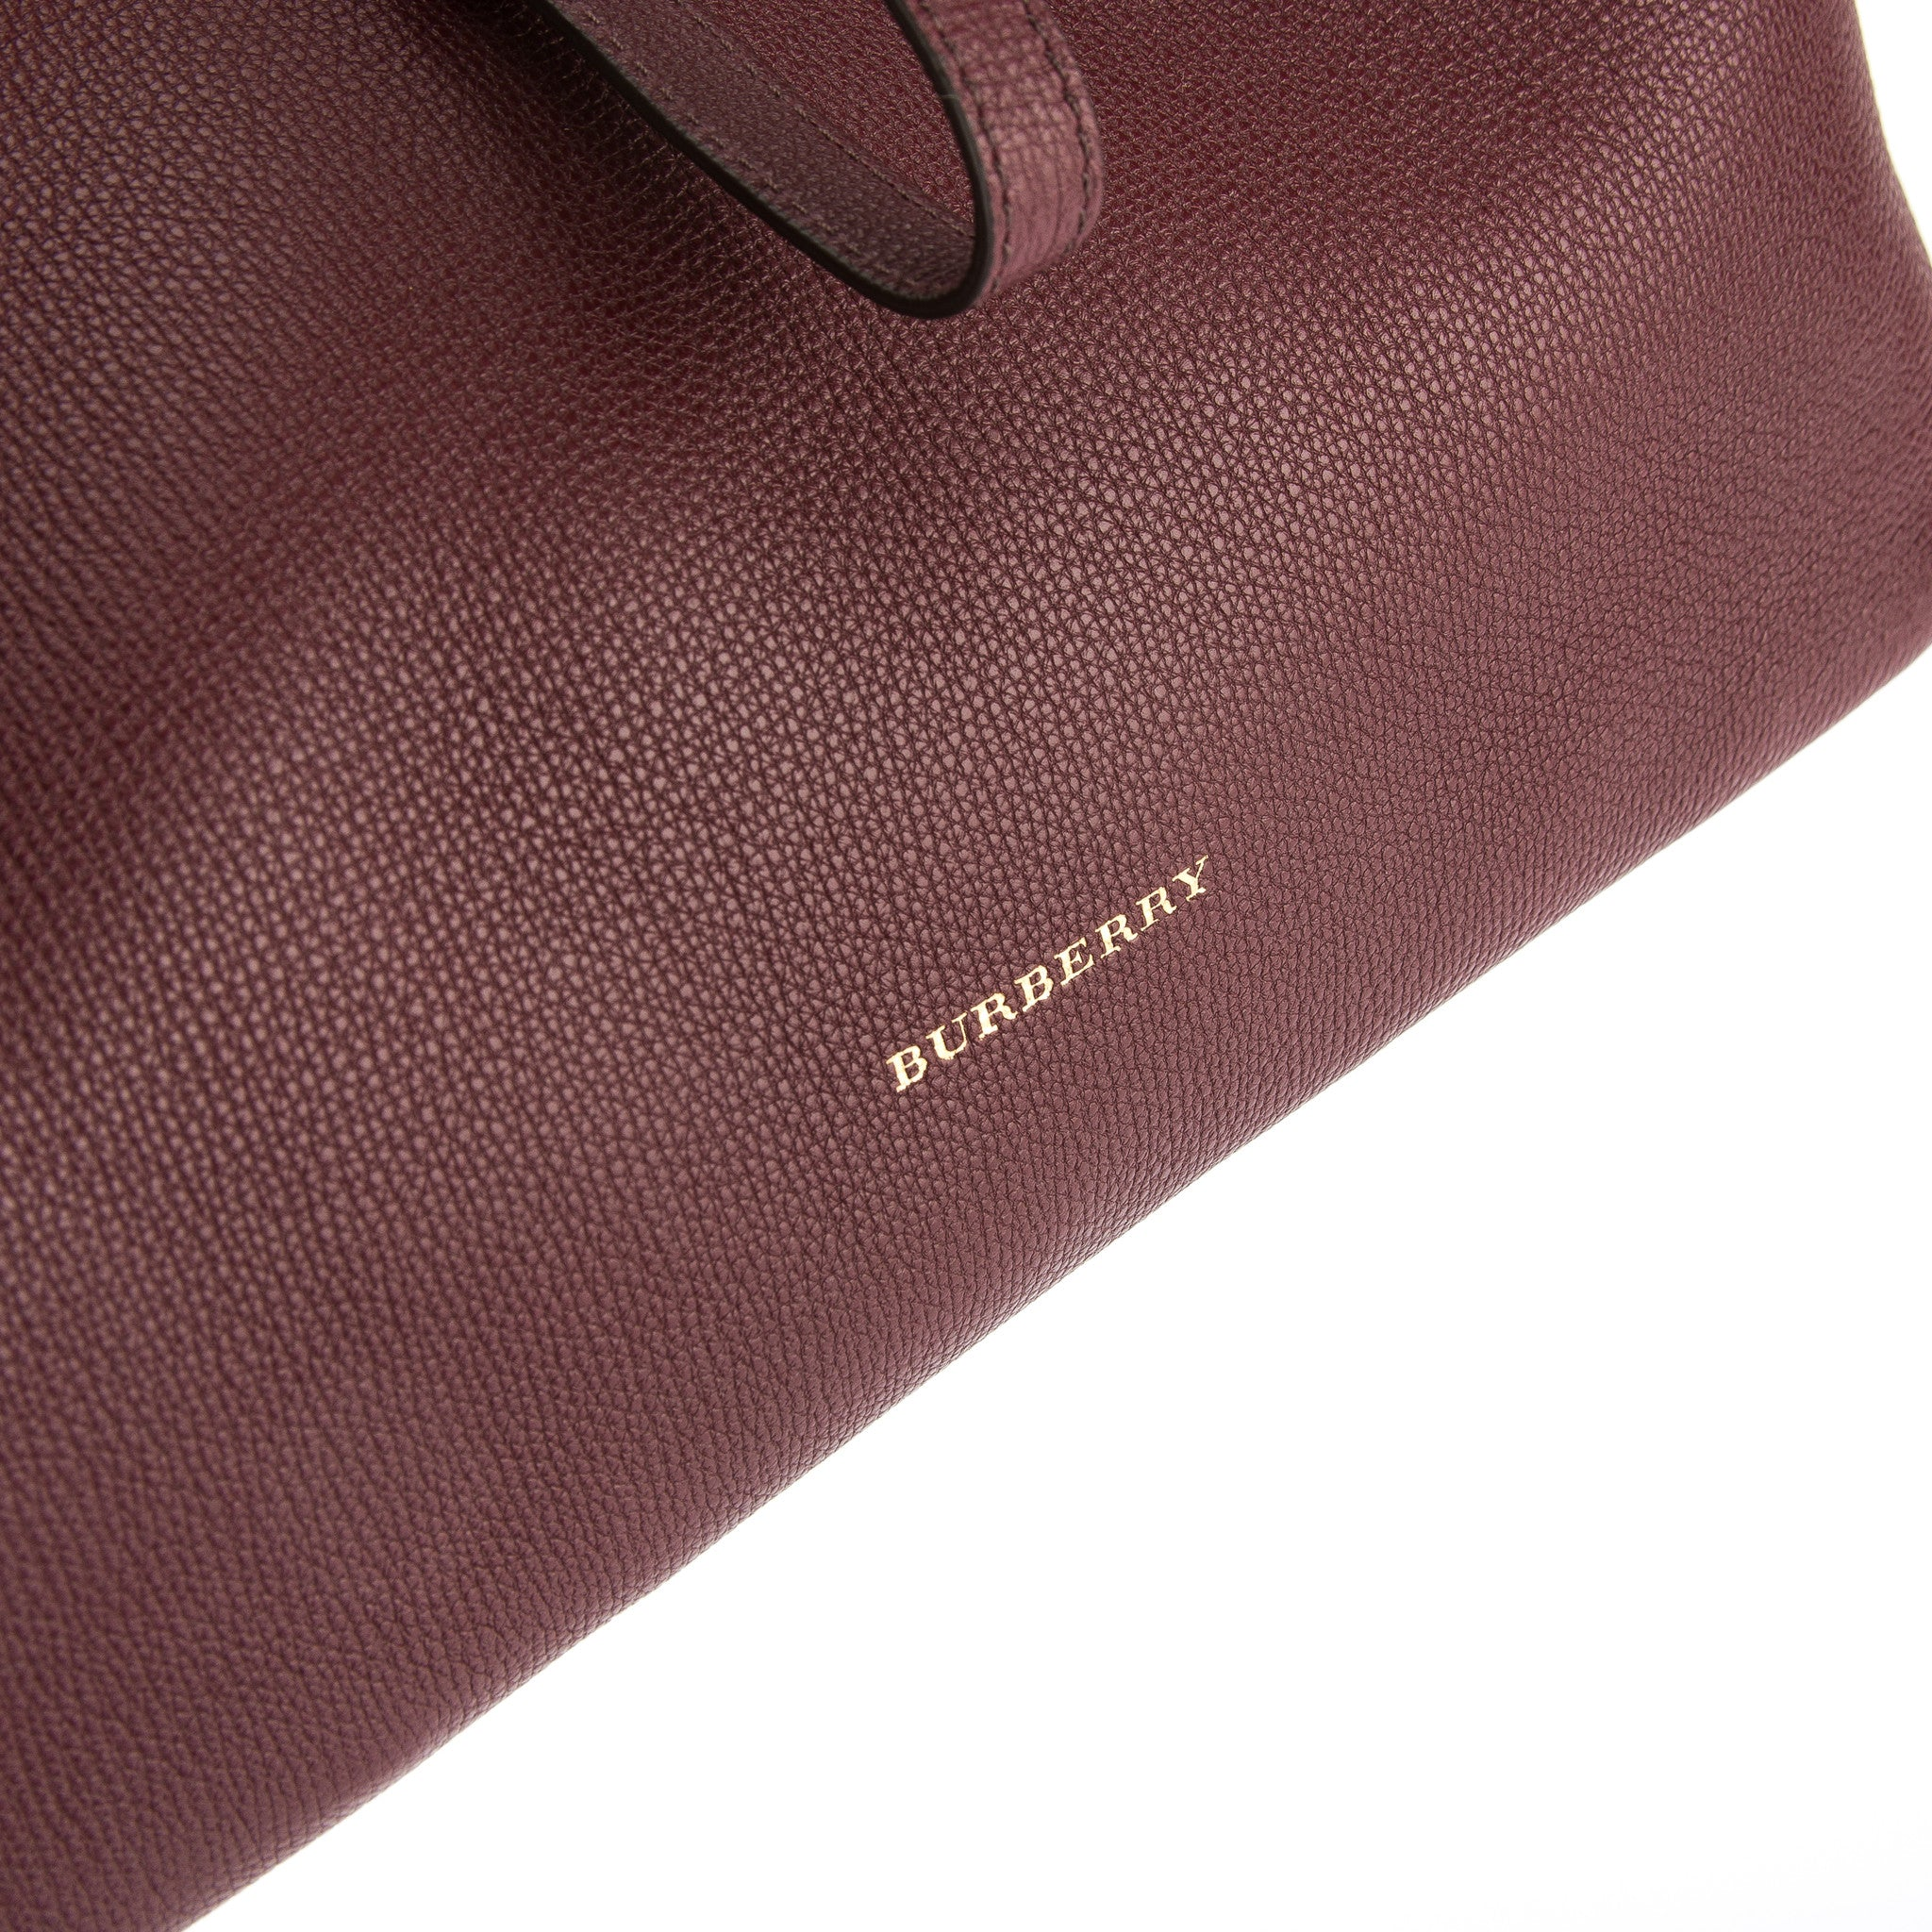 Burberry Mahogany Red Grainy Leather Medium Tote Bag (New with Tags ... 45ba057765